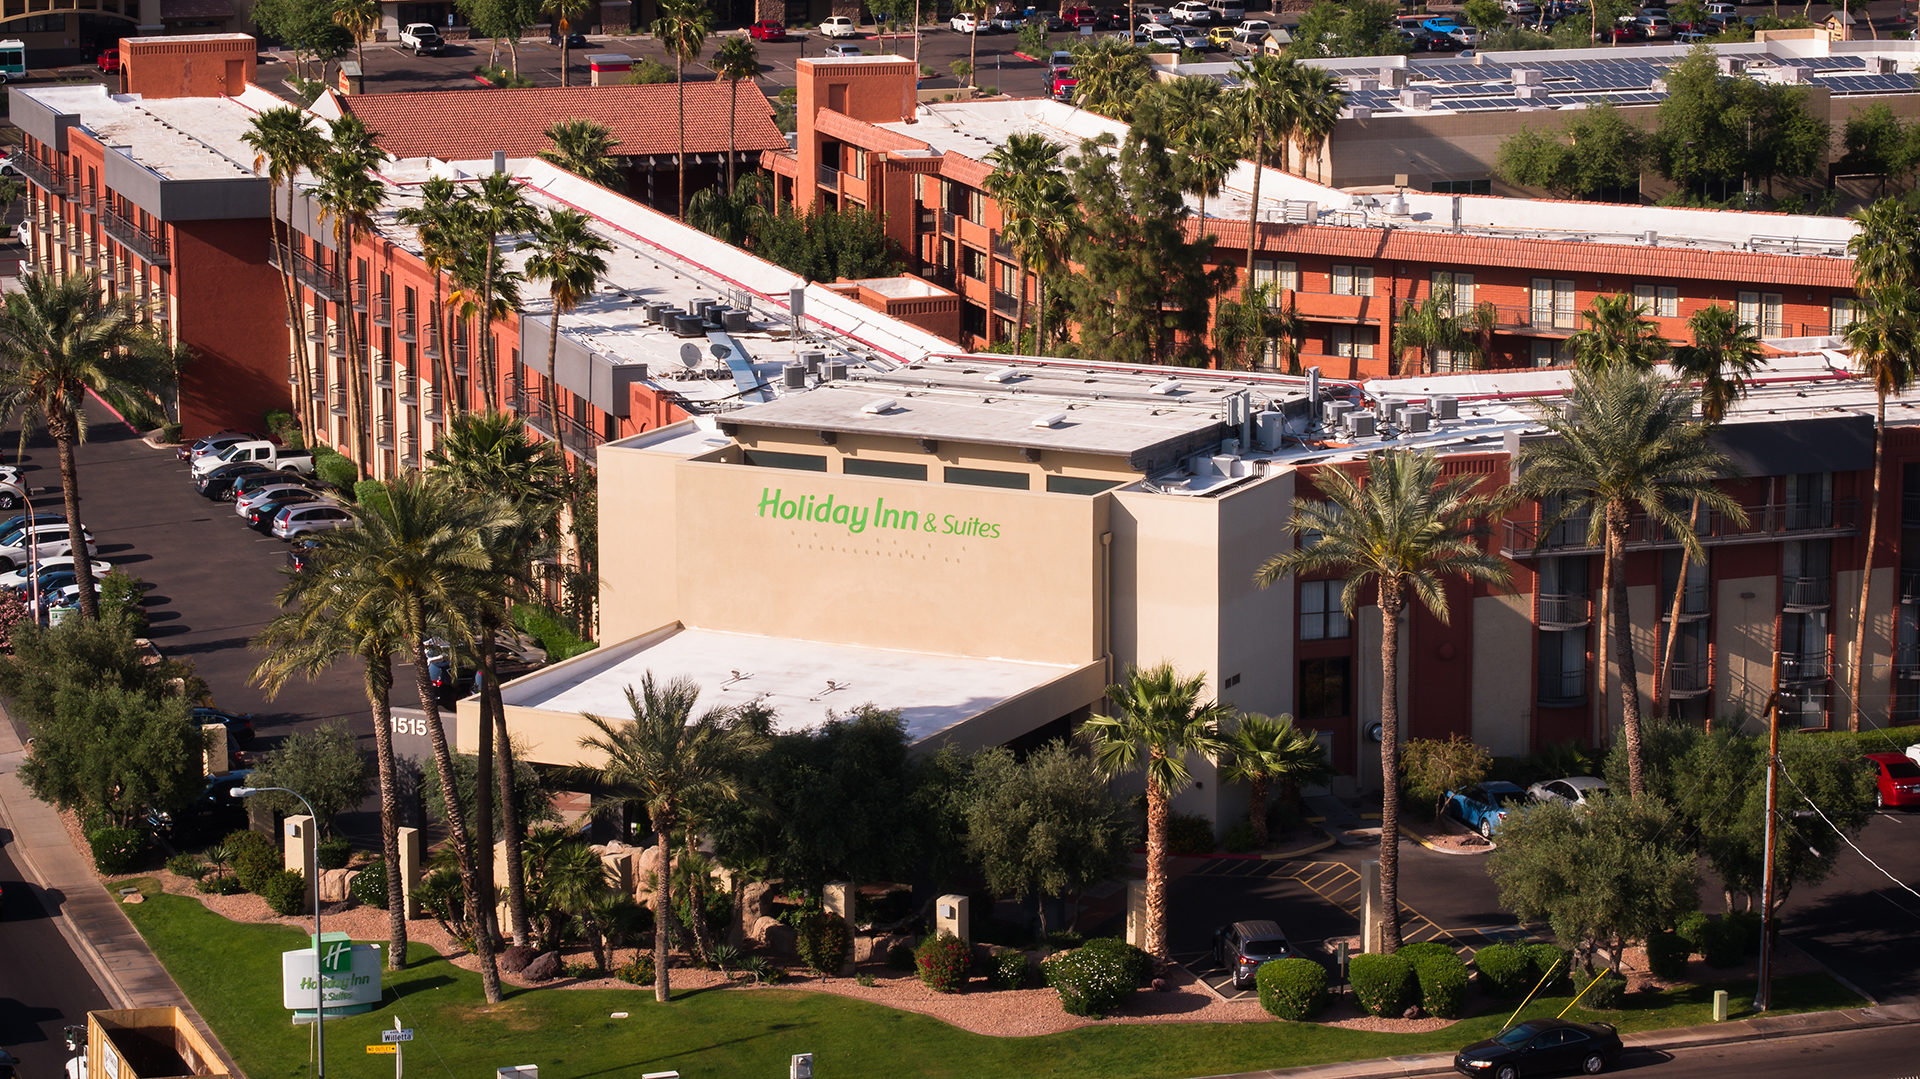 Holiday Inn 44th Street Phoenix Airport from drone